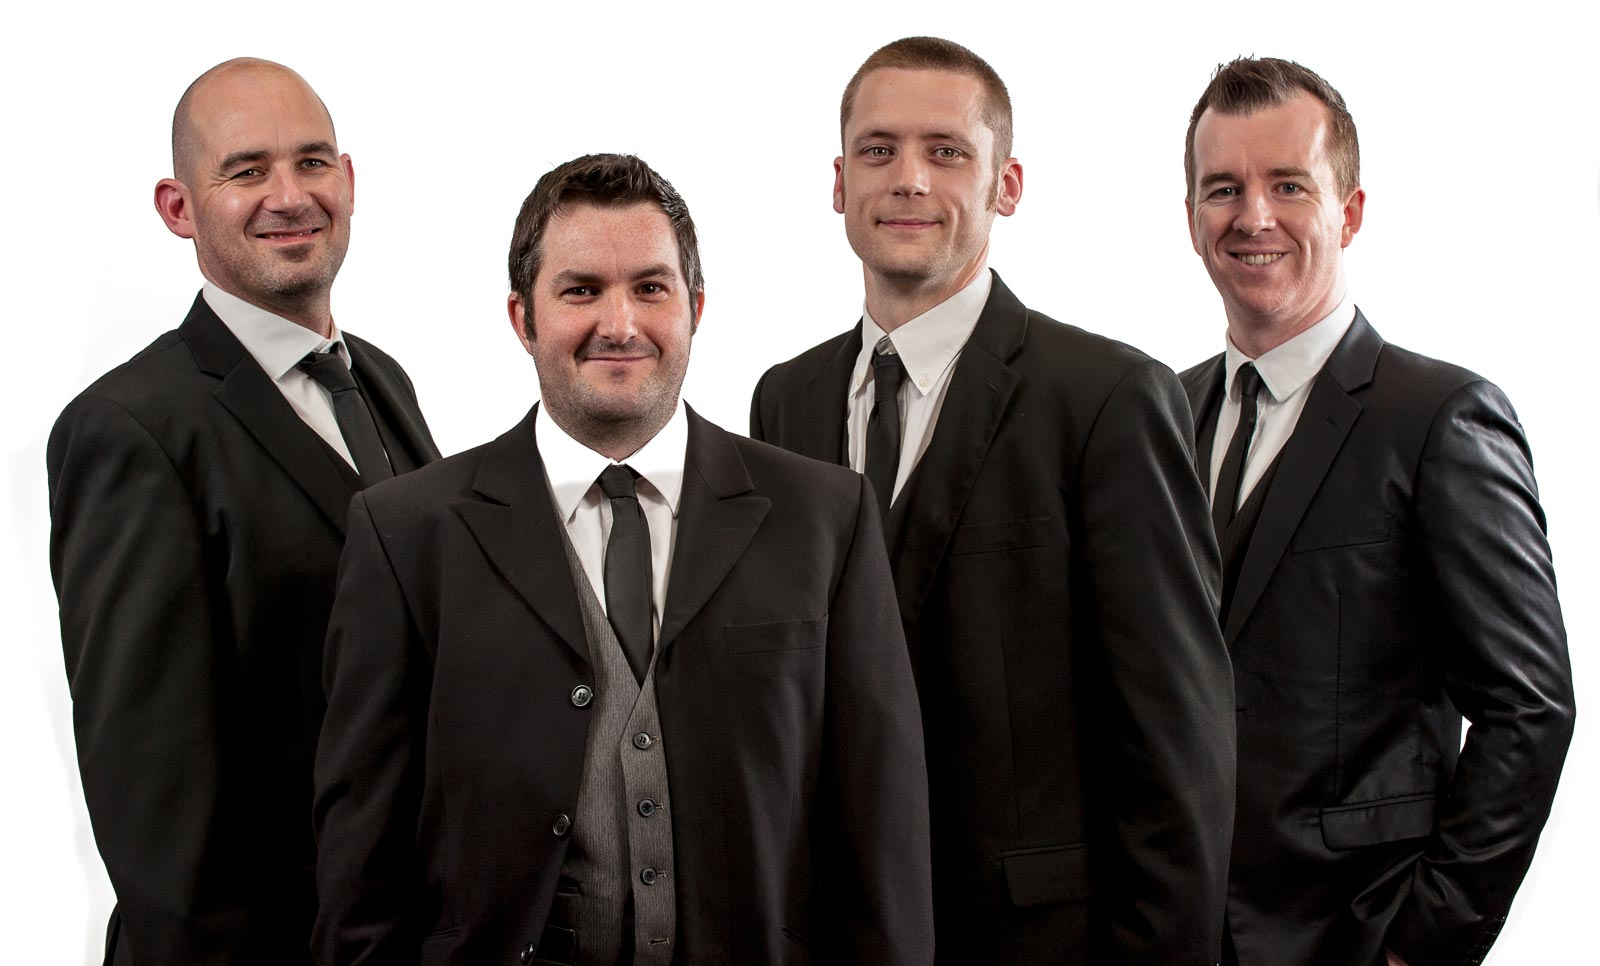 Live Wedding Band Slinky | Rock Pop and Indie Wedding Band | Band dressed in suits.